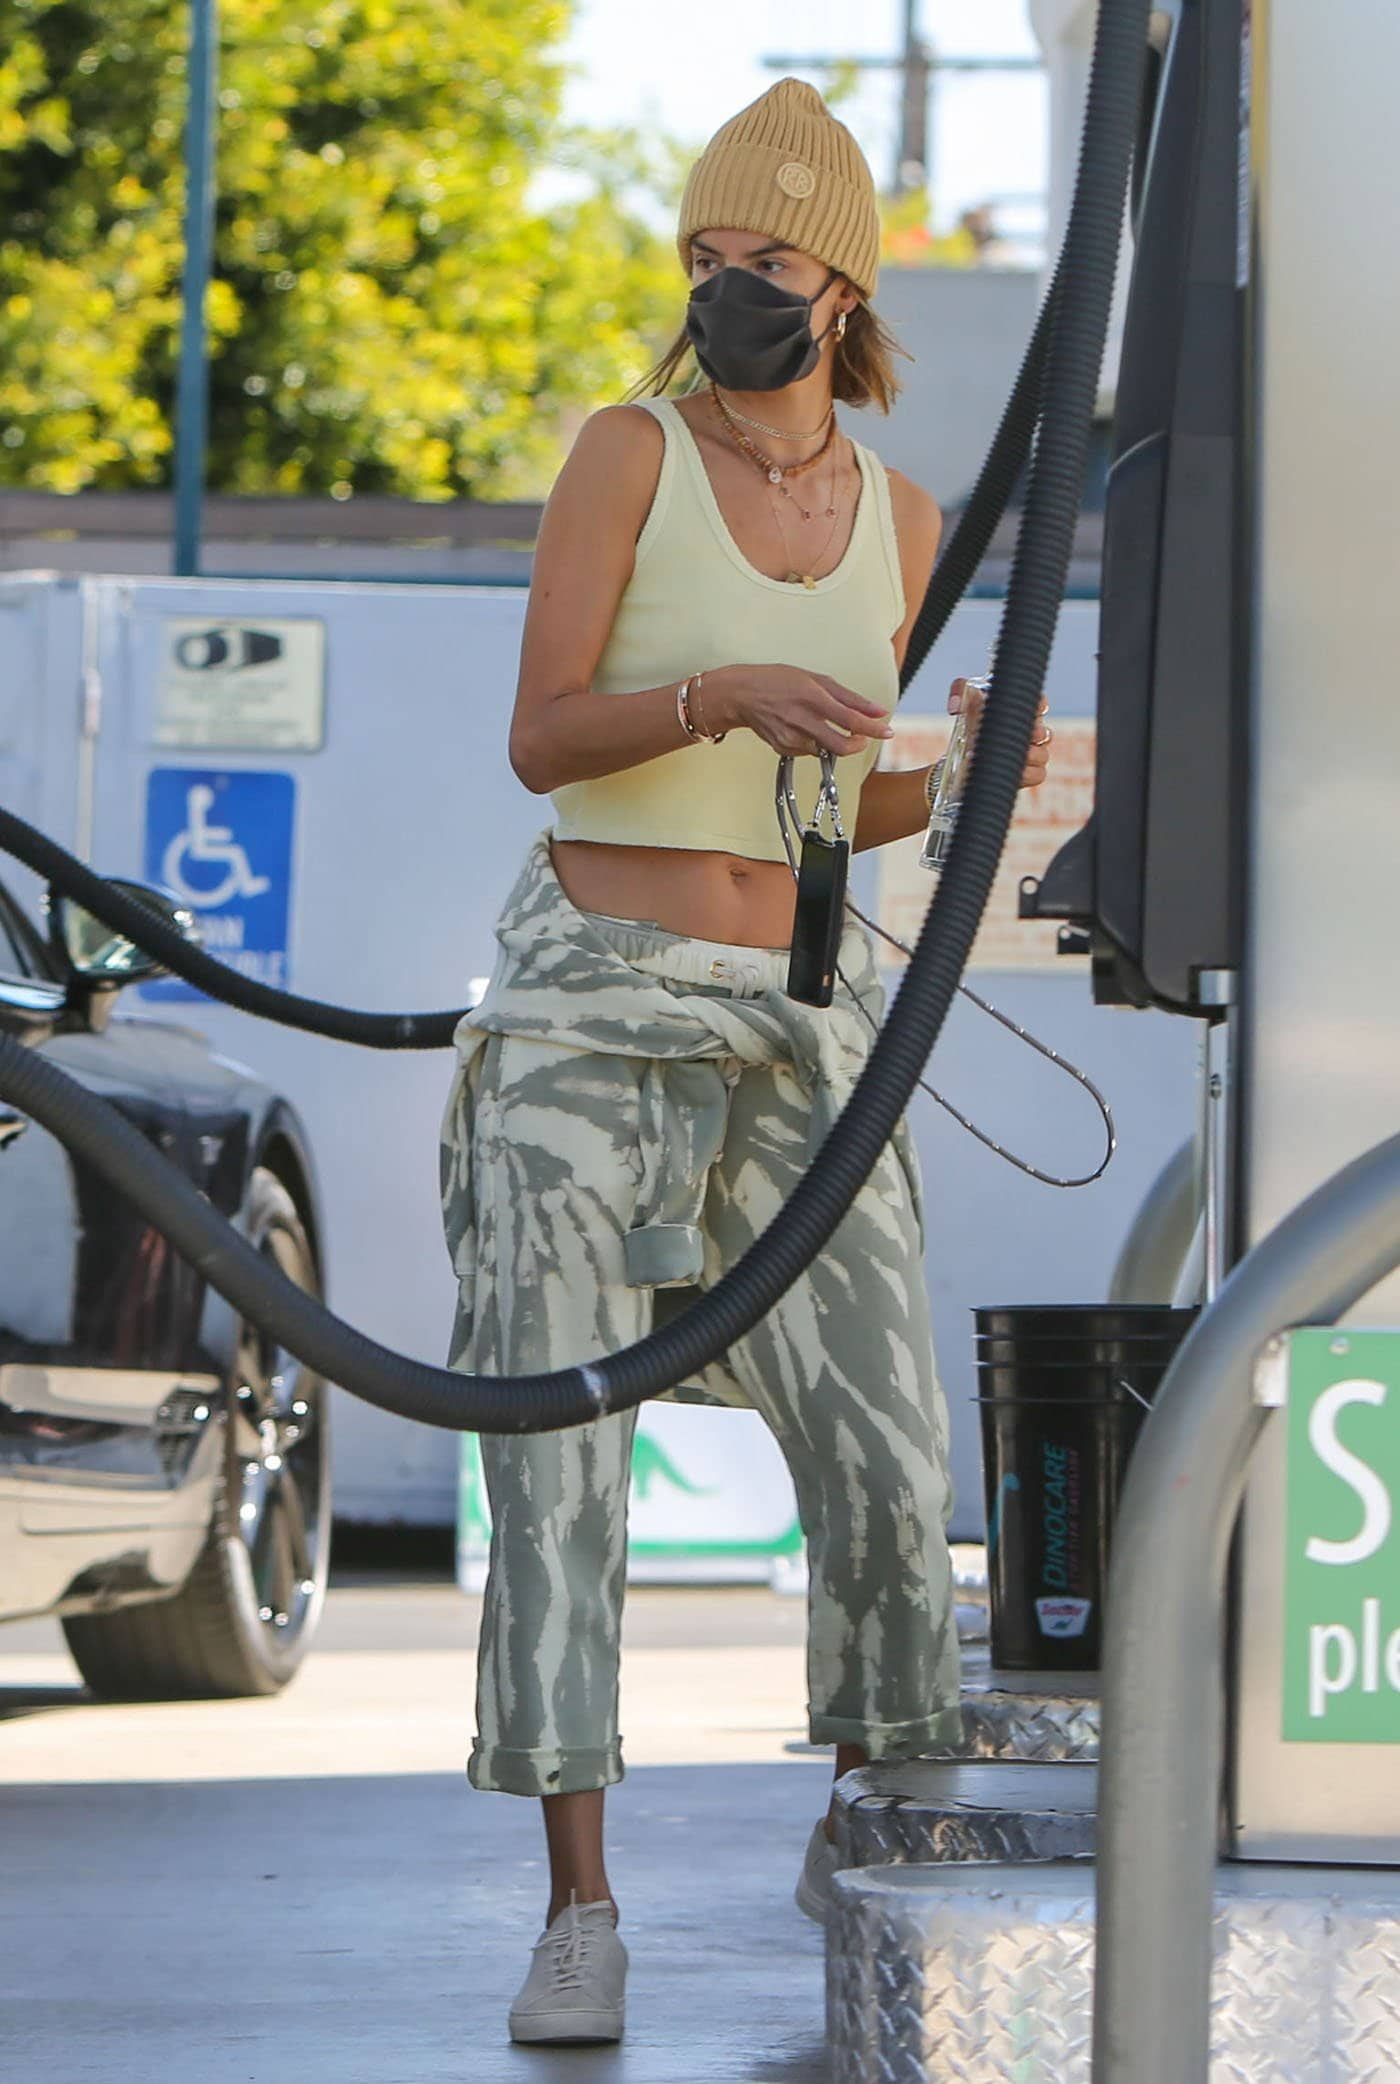 Alessandra Ambrosio pumping up her own gas in Brentwood, Los Angeles on March 18, 2021